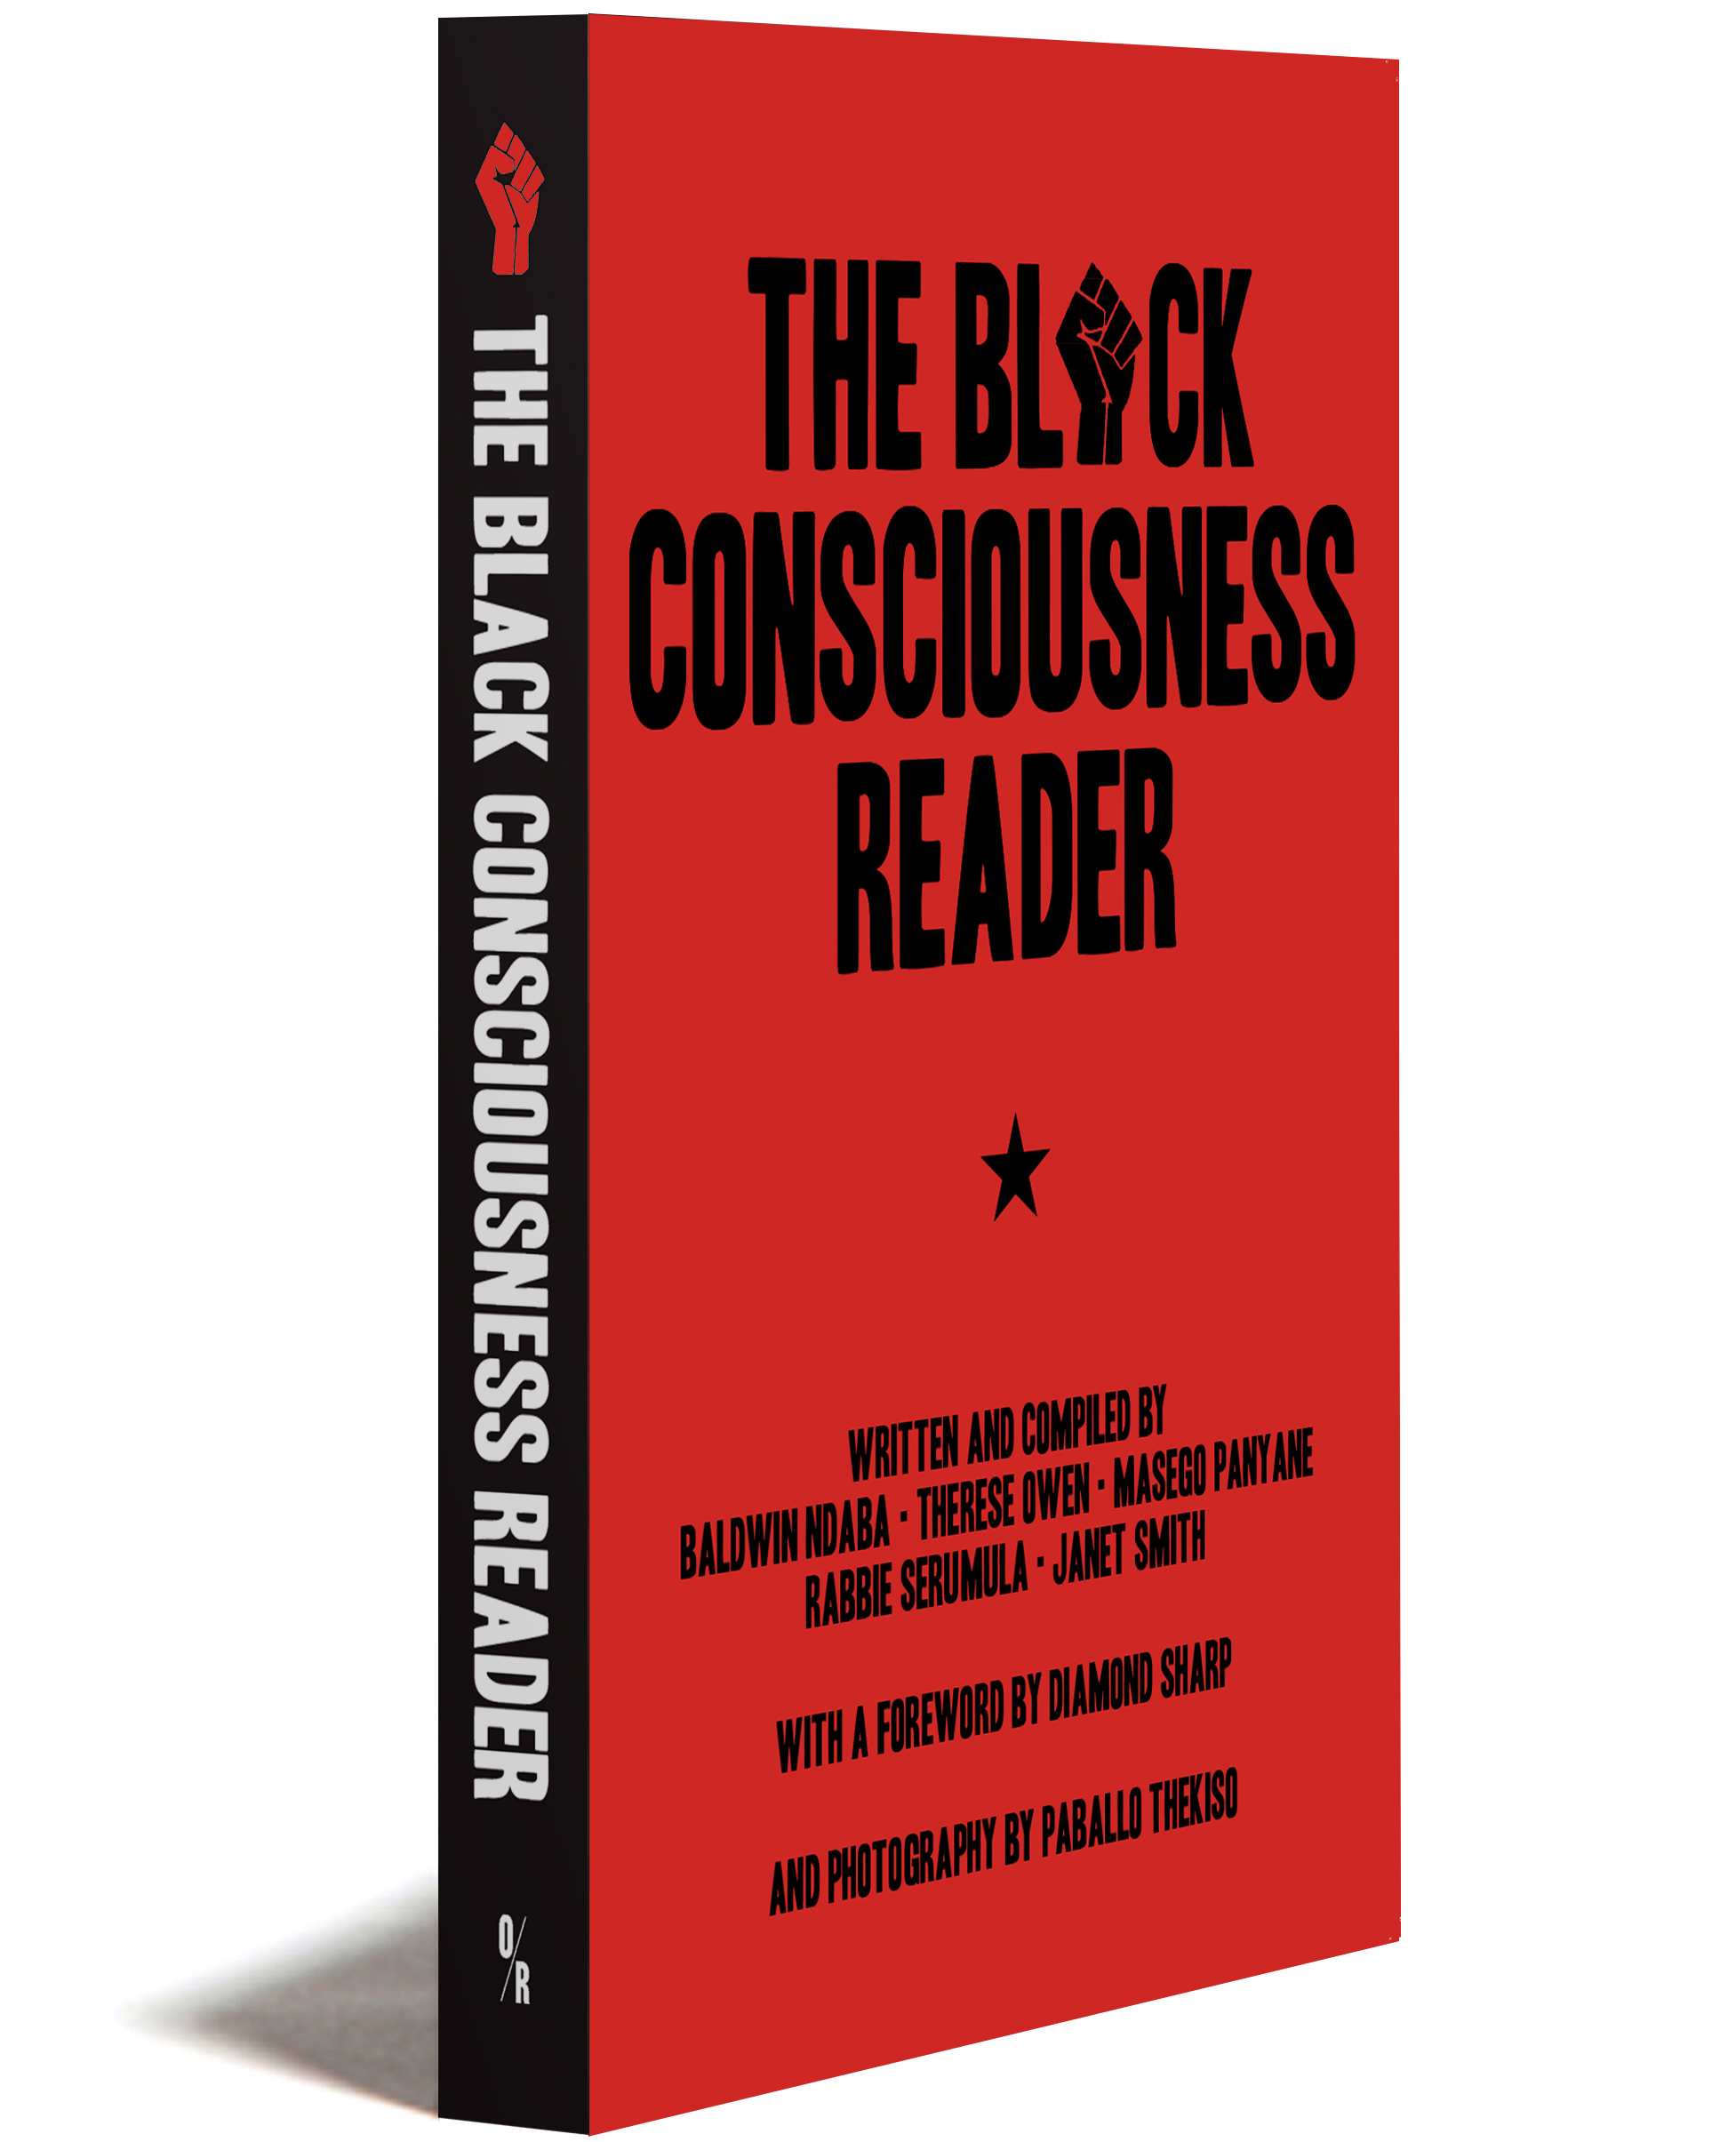 the black consciousness reader cover